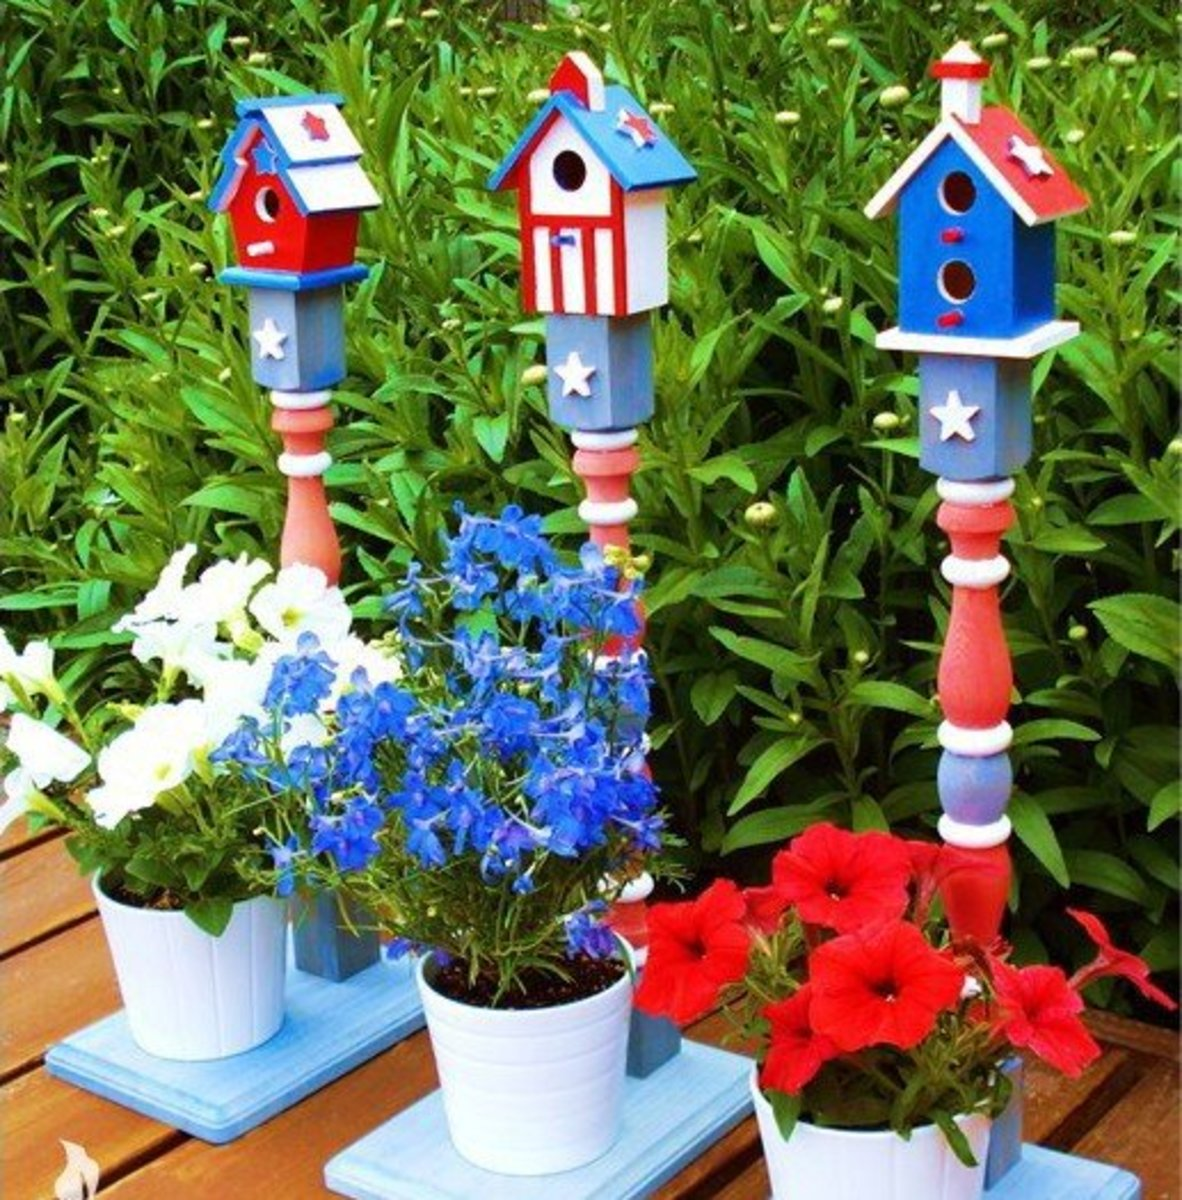 47 Patriotic Craft Ideas: 4th of July and Memorial Day